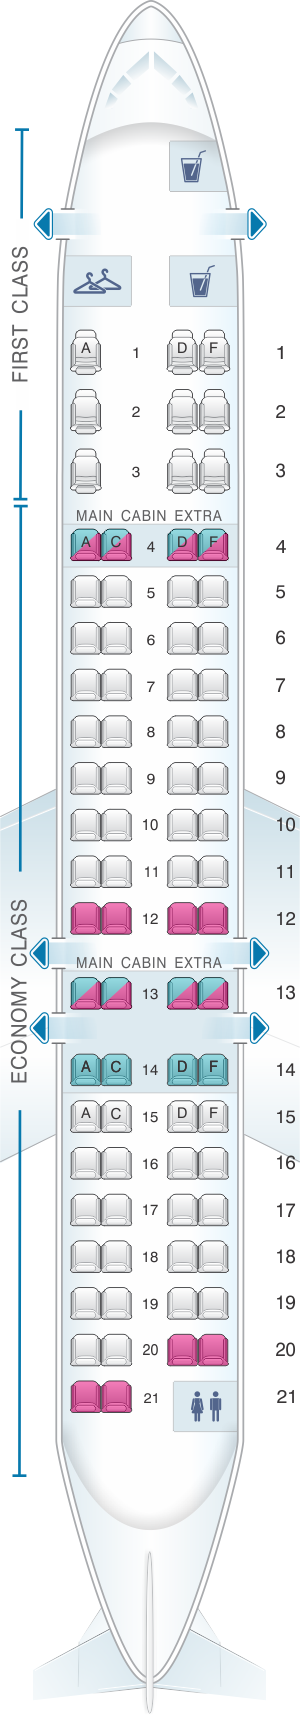 Seat map for American Airlines CRJ 900 V3